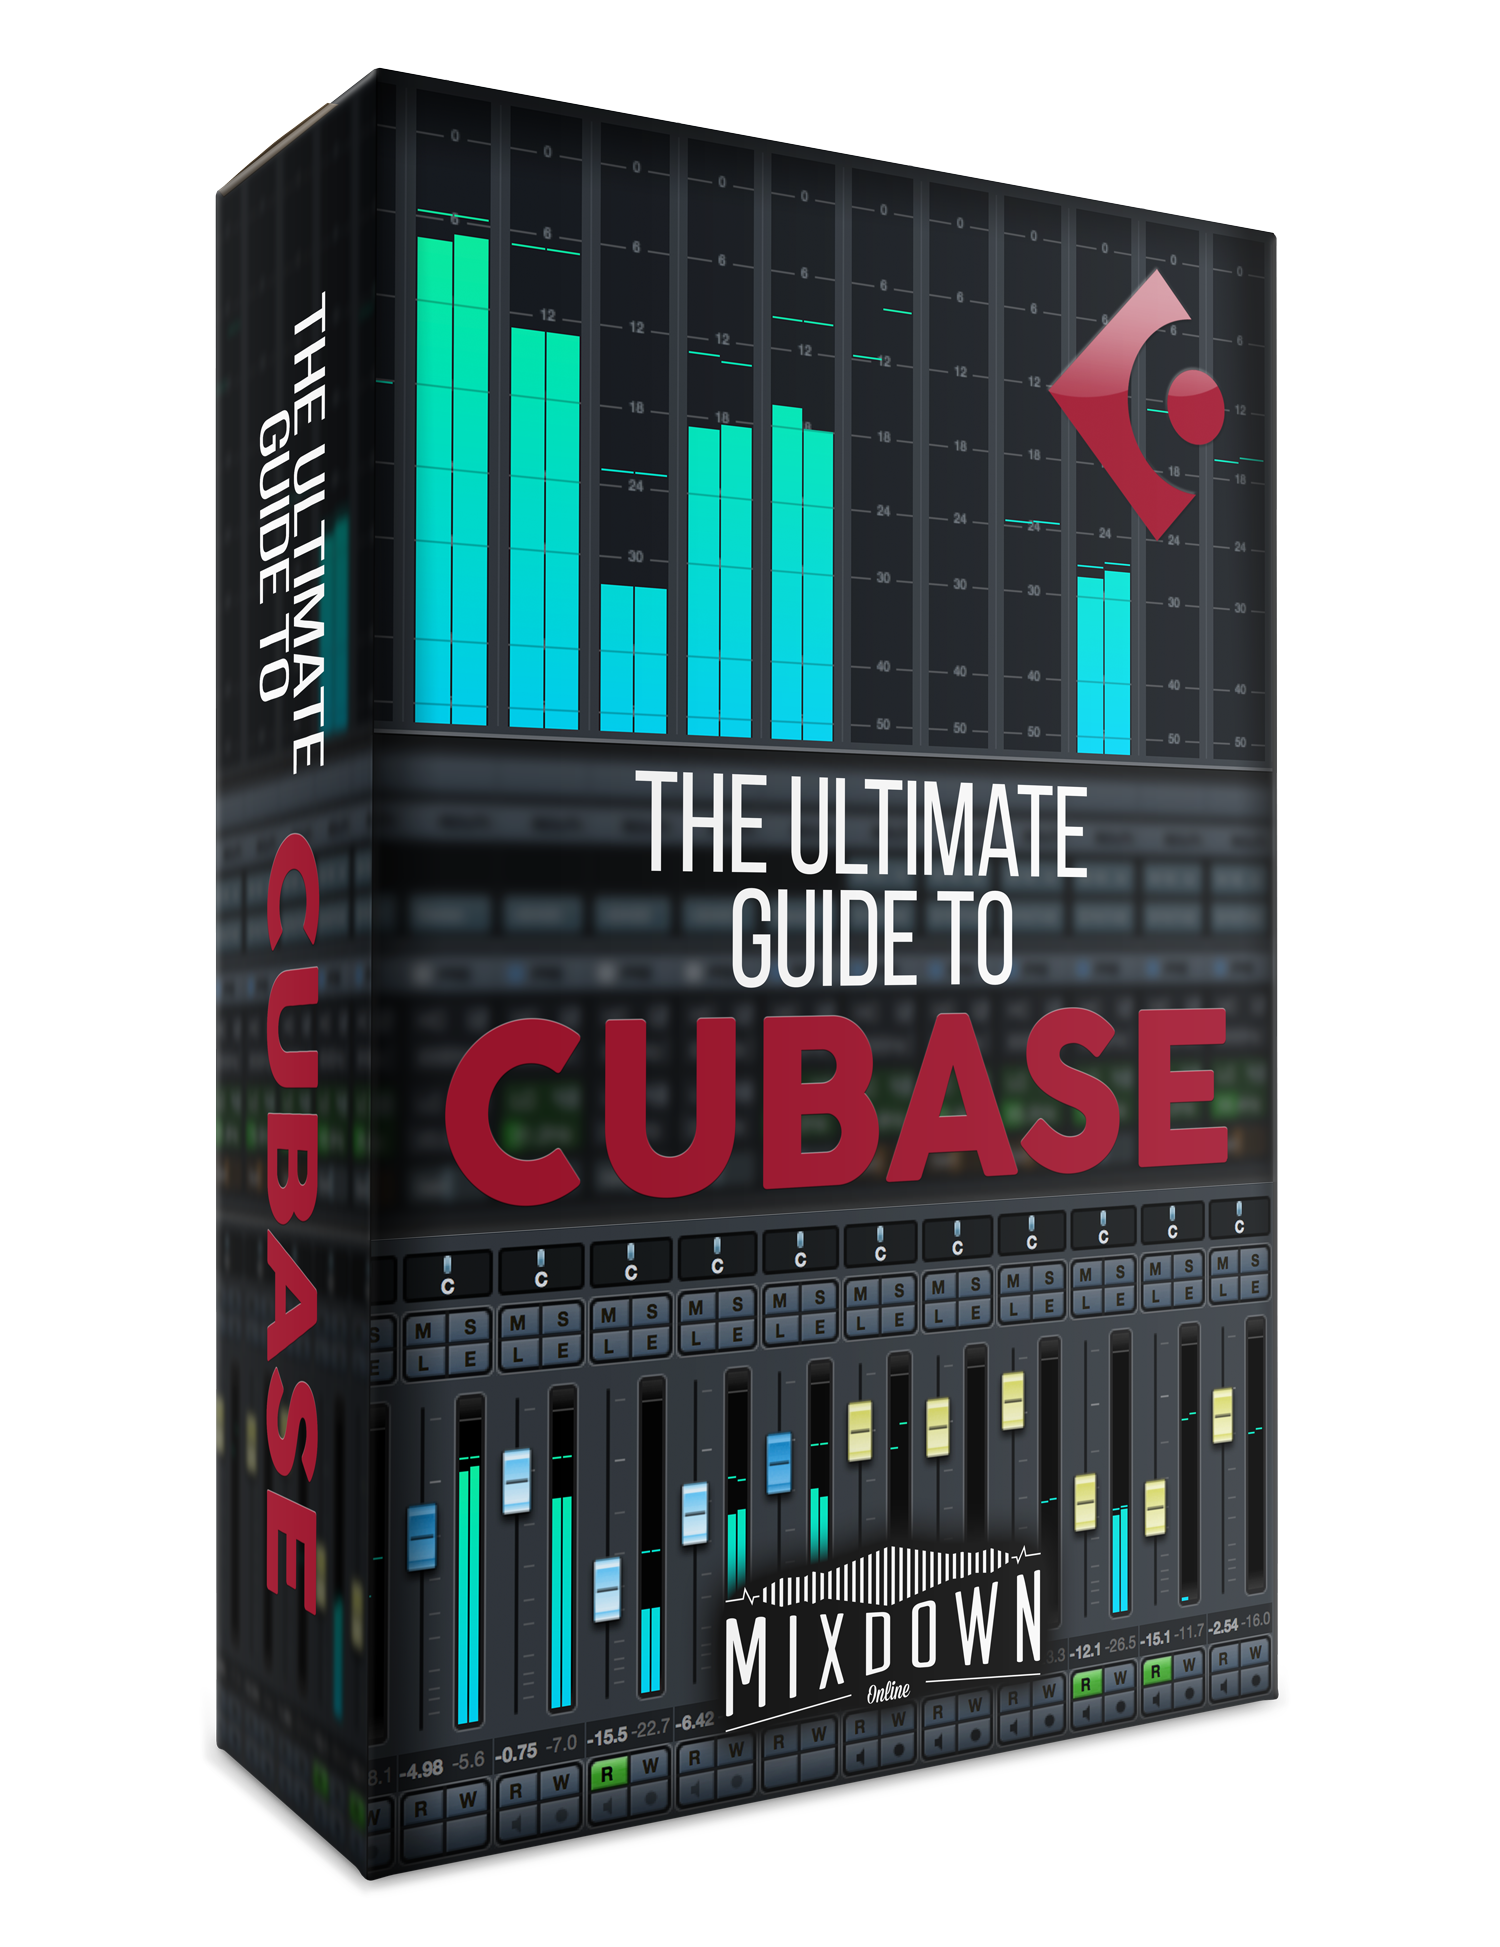 THE ULTIMATE GUIDE TO CUBASE